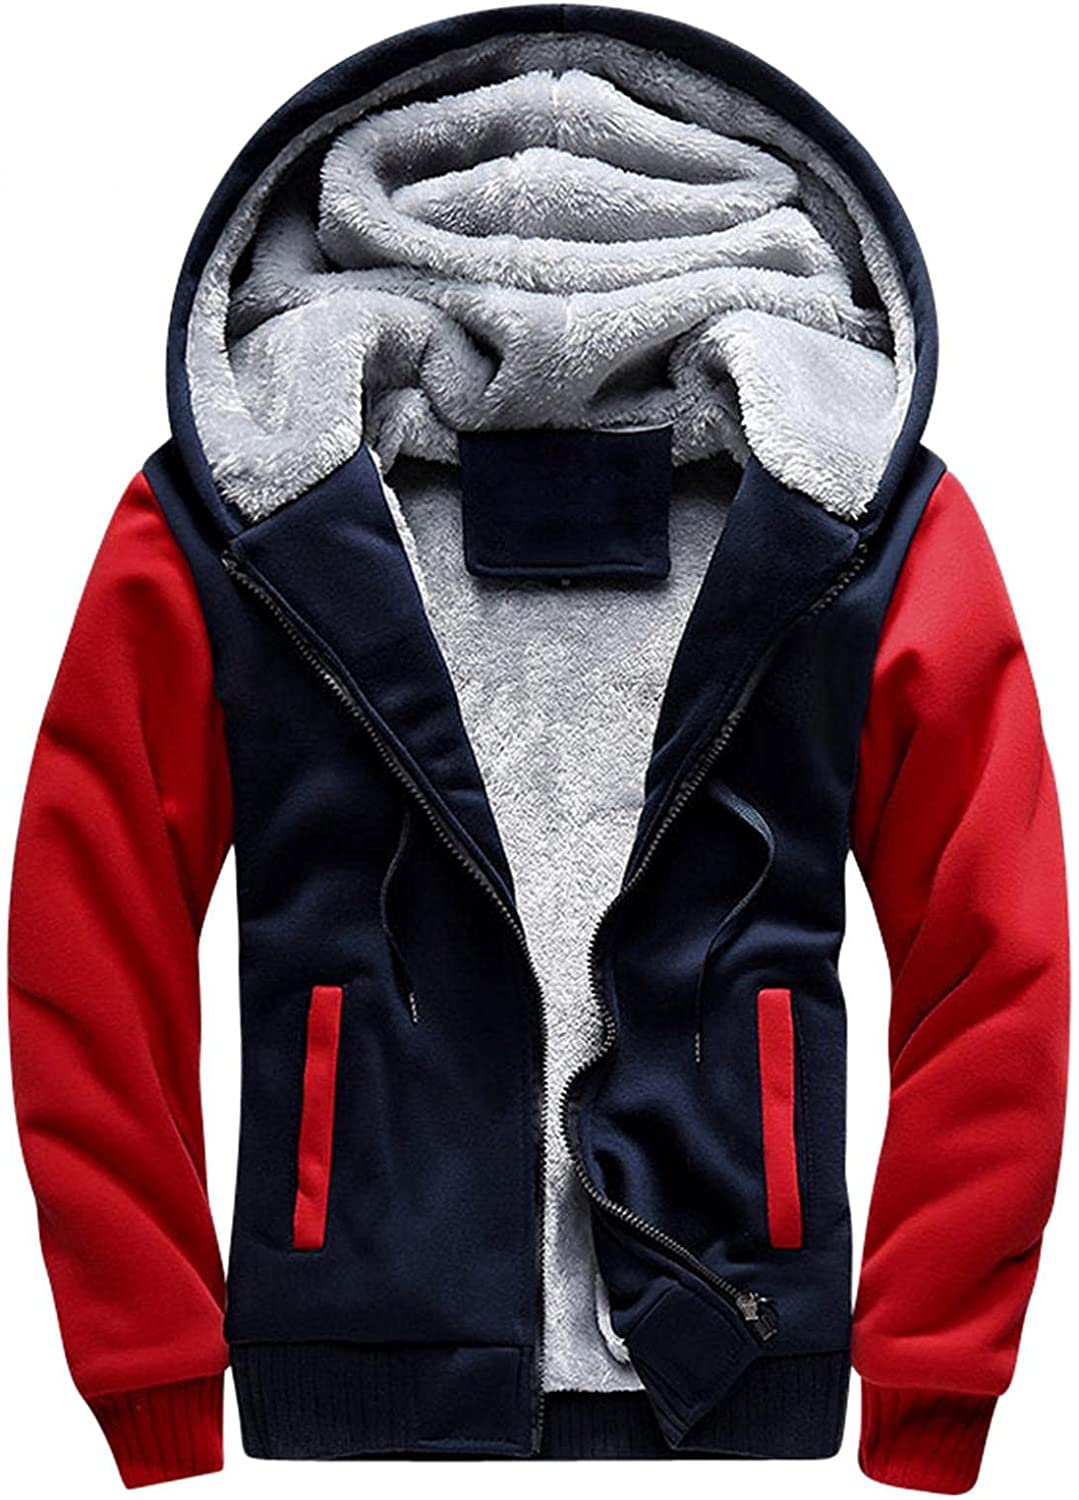 Beppter Sherpa Hoodies for Men Heavyweight Fleece Hooded Sweatershirts Outwear Thicken Thermal Fluffy Fuzzy Jackets Coats